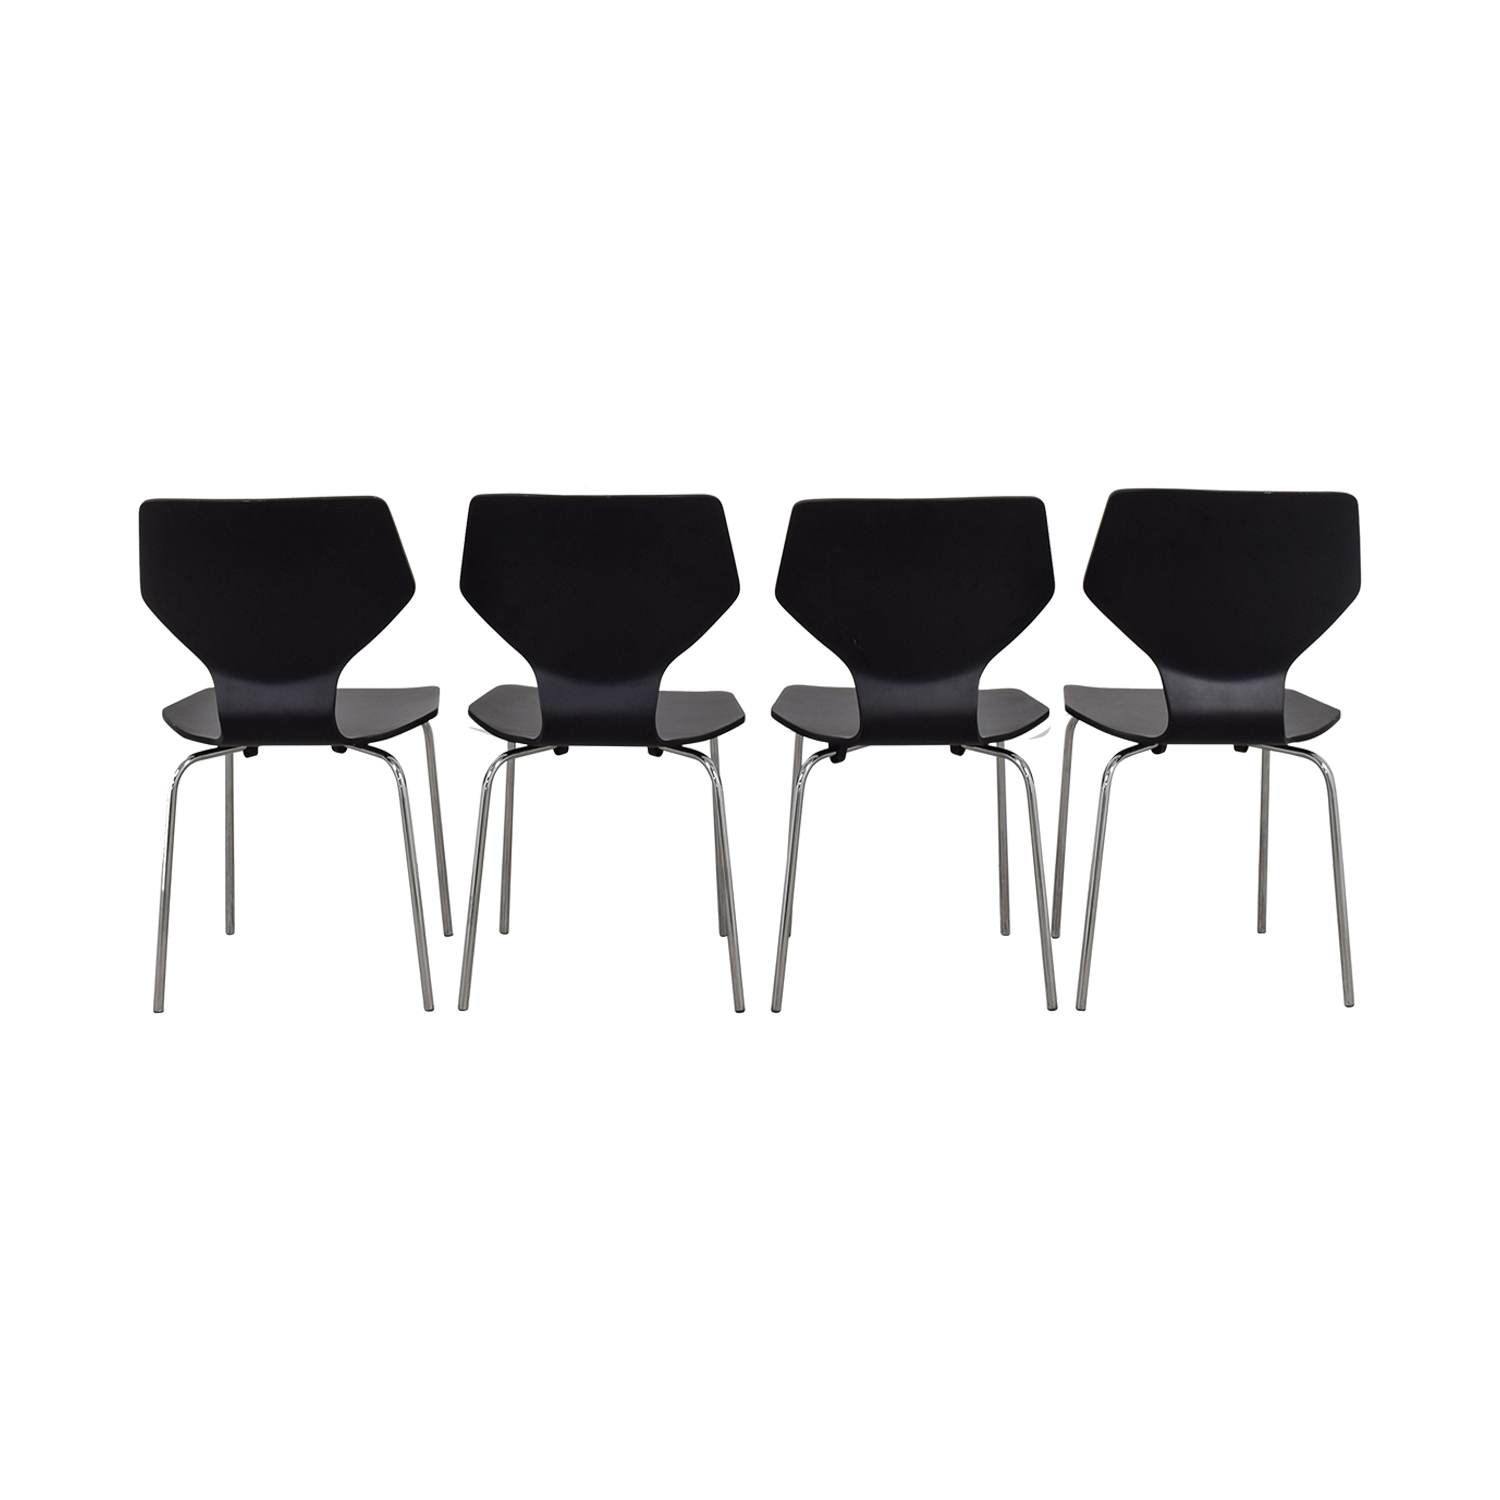 Room & Board Pike Chair with Chrome Base / Chairs